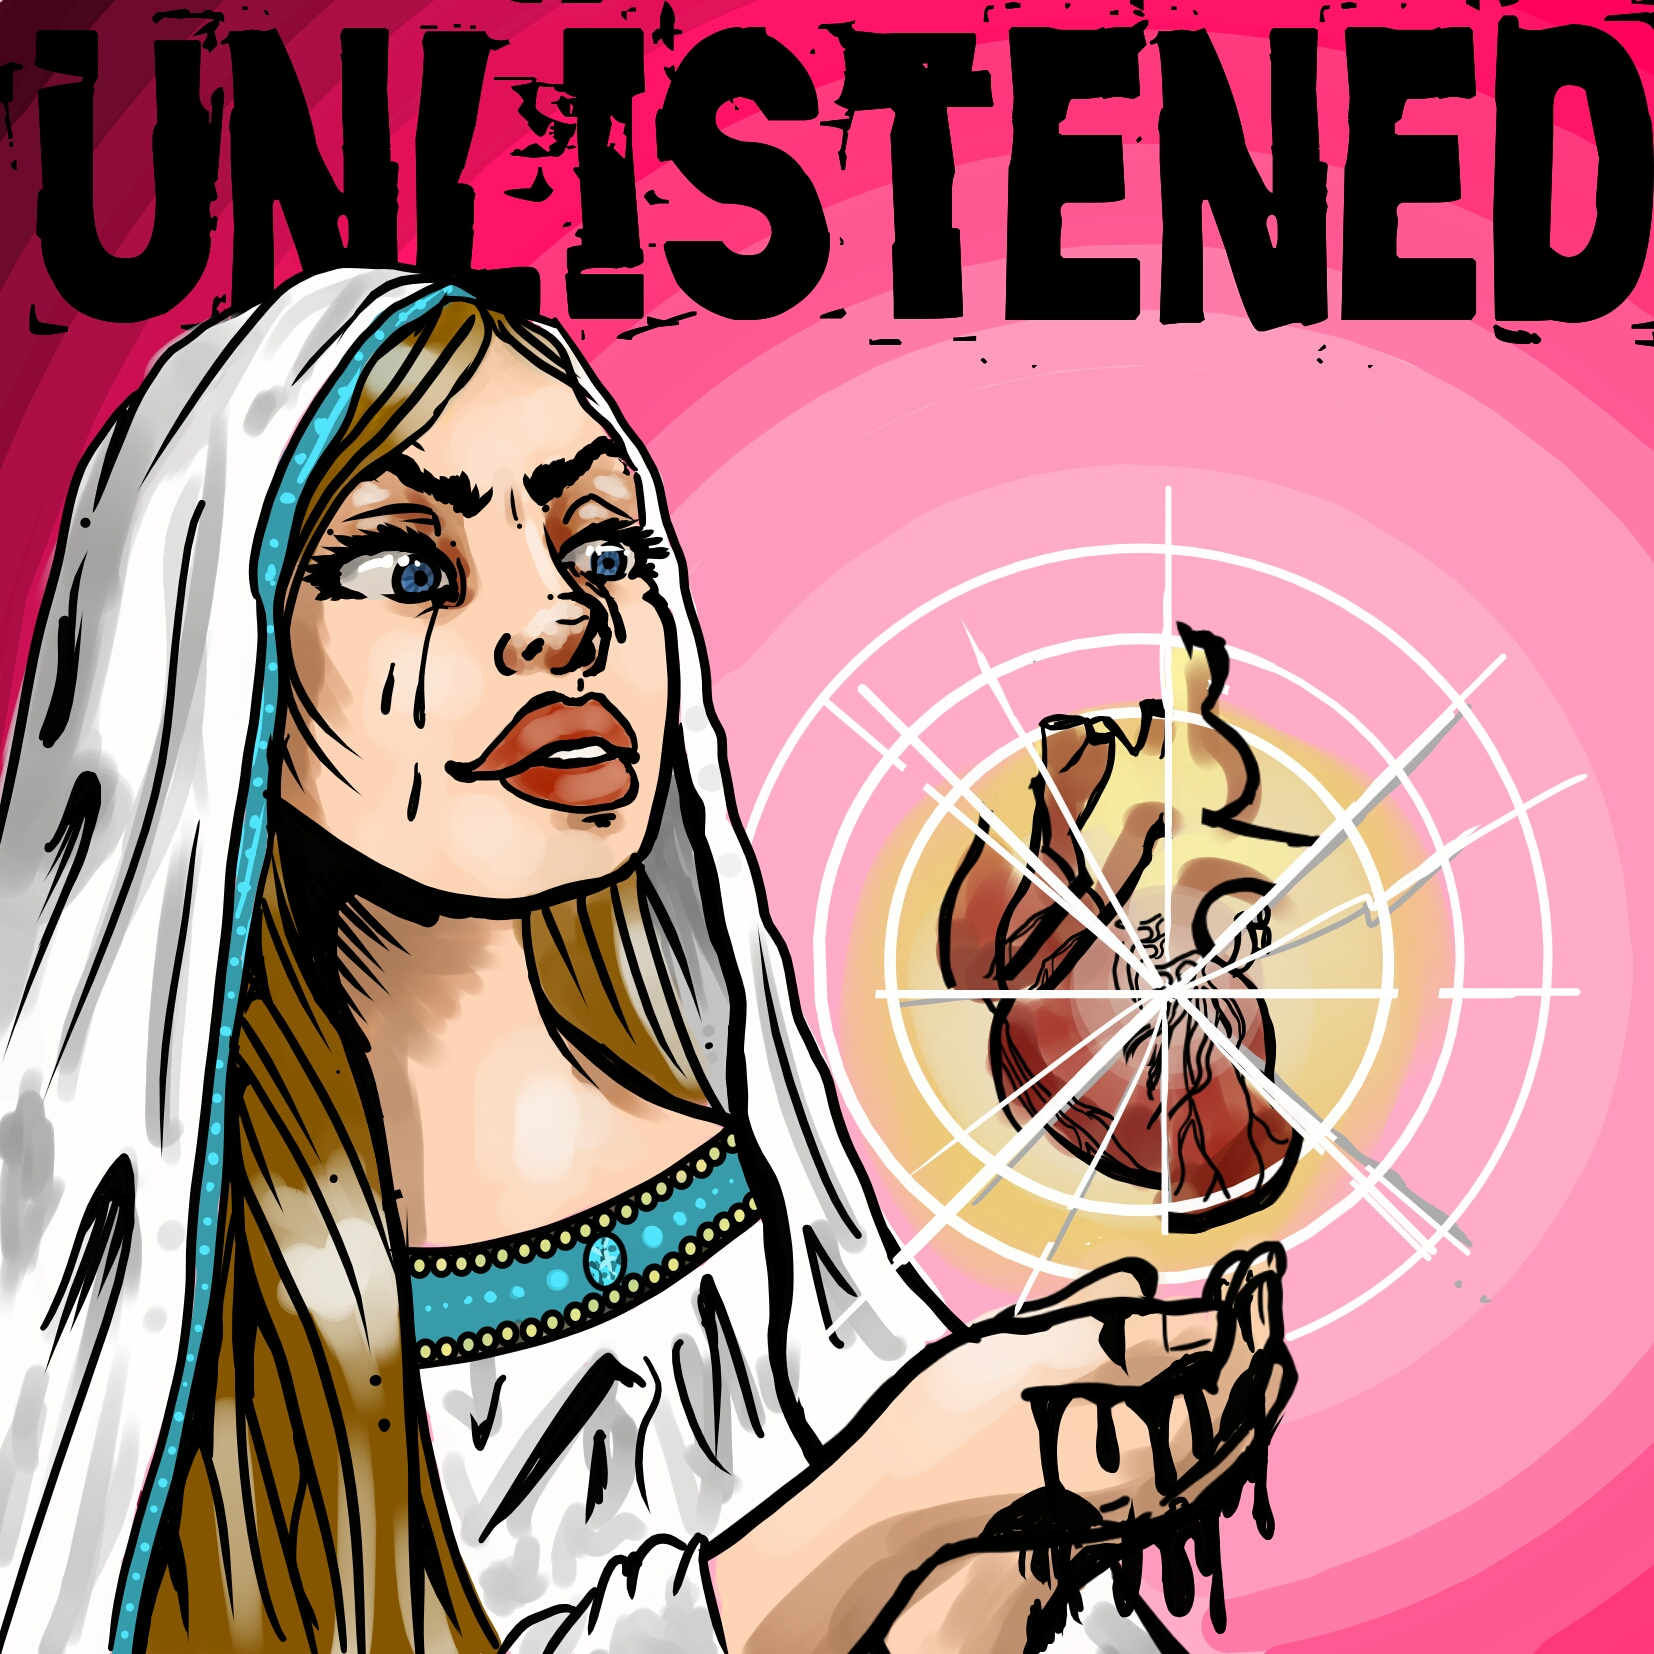 Unlistened artwork